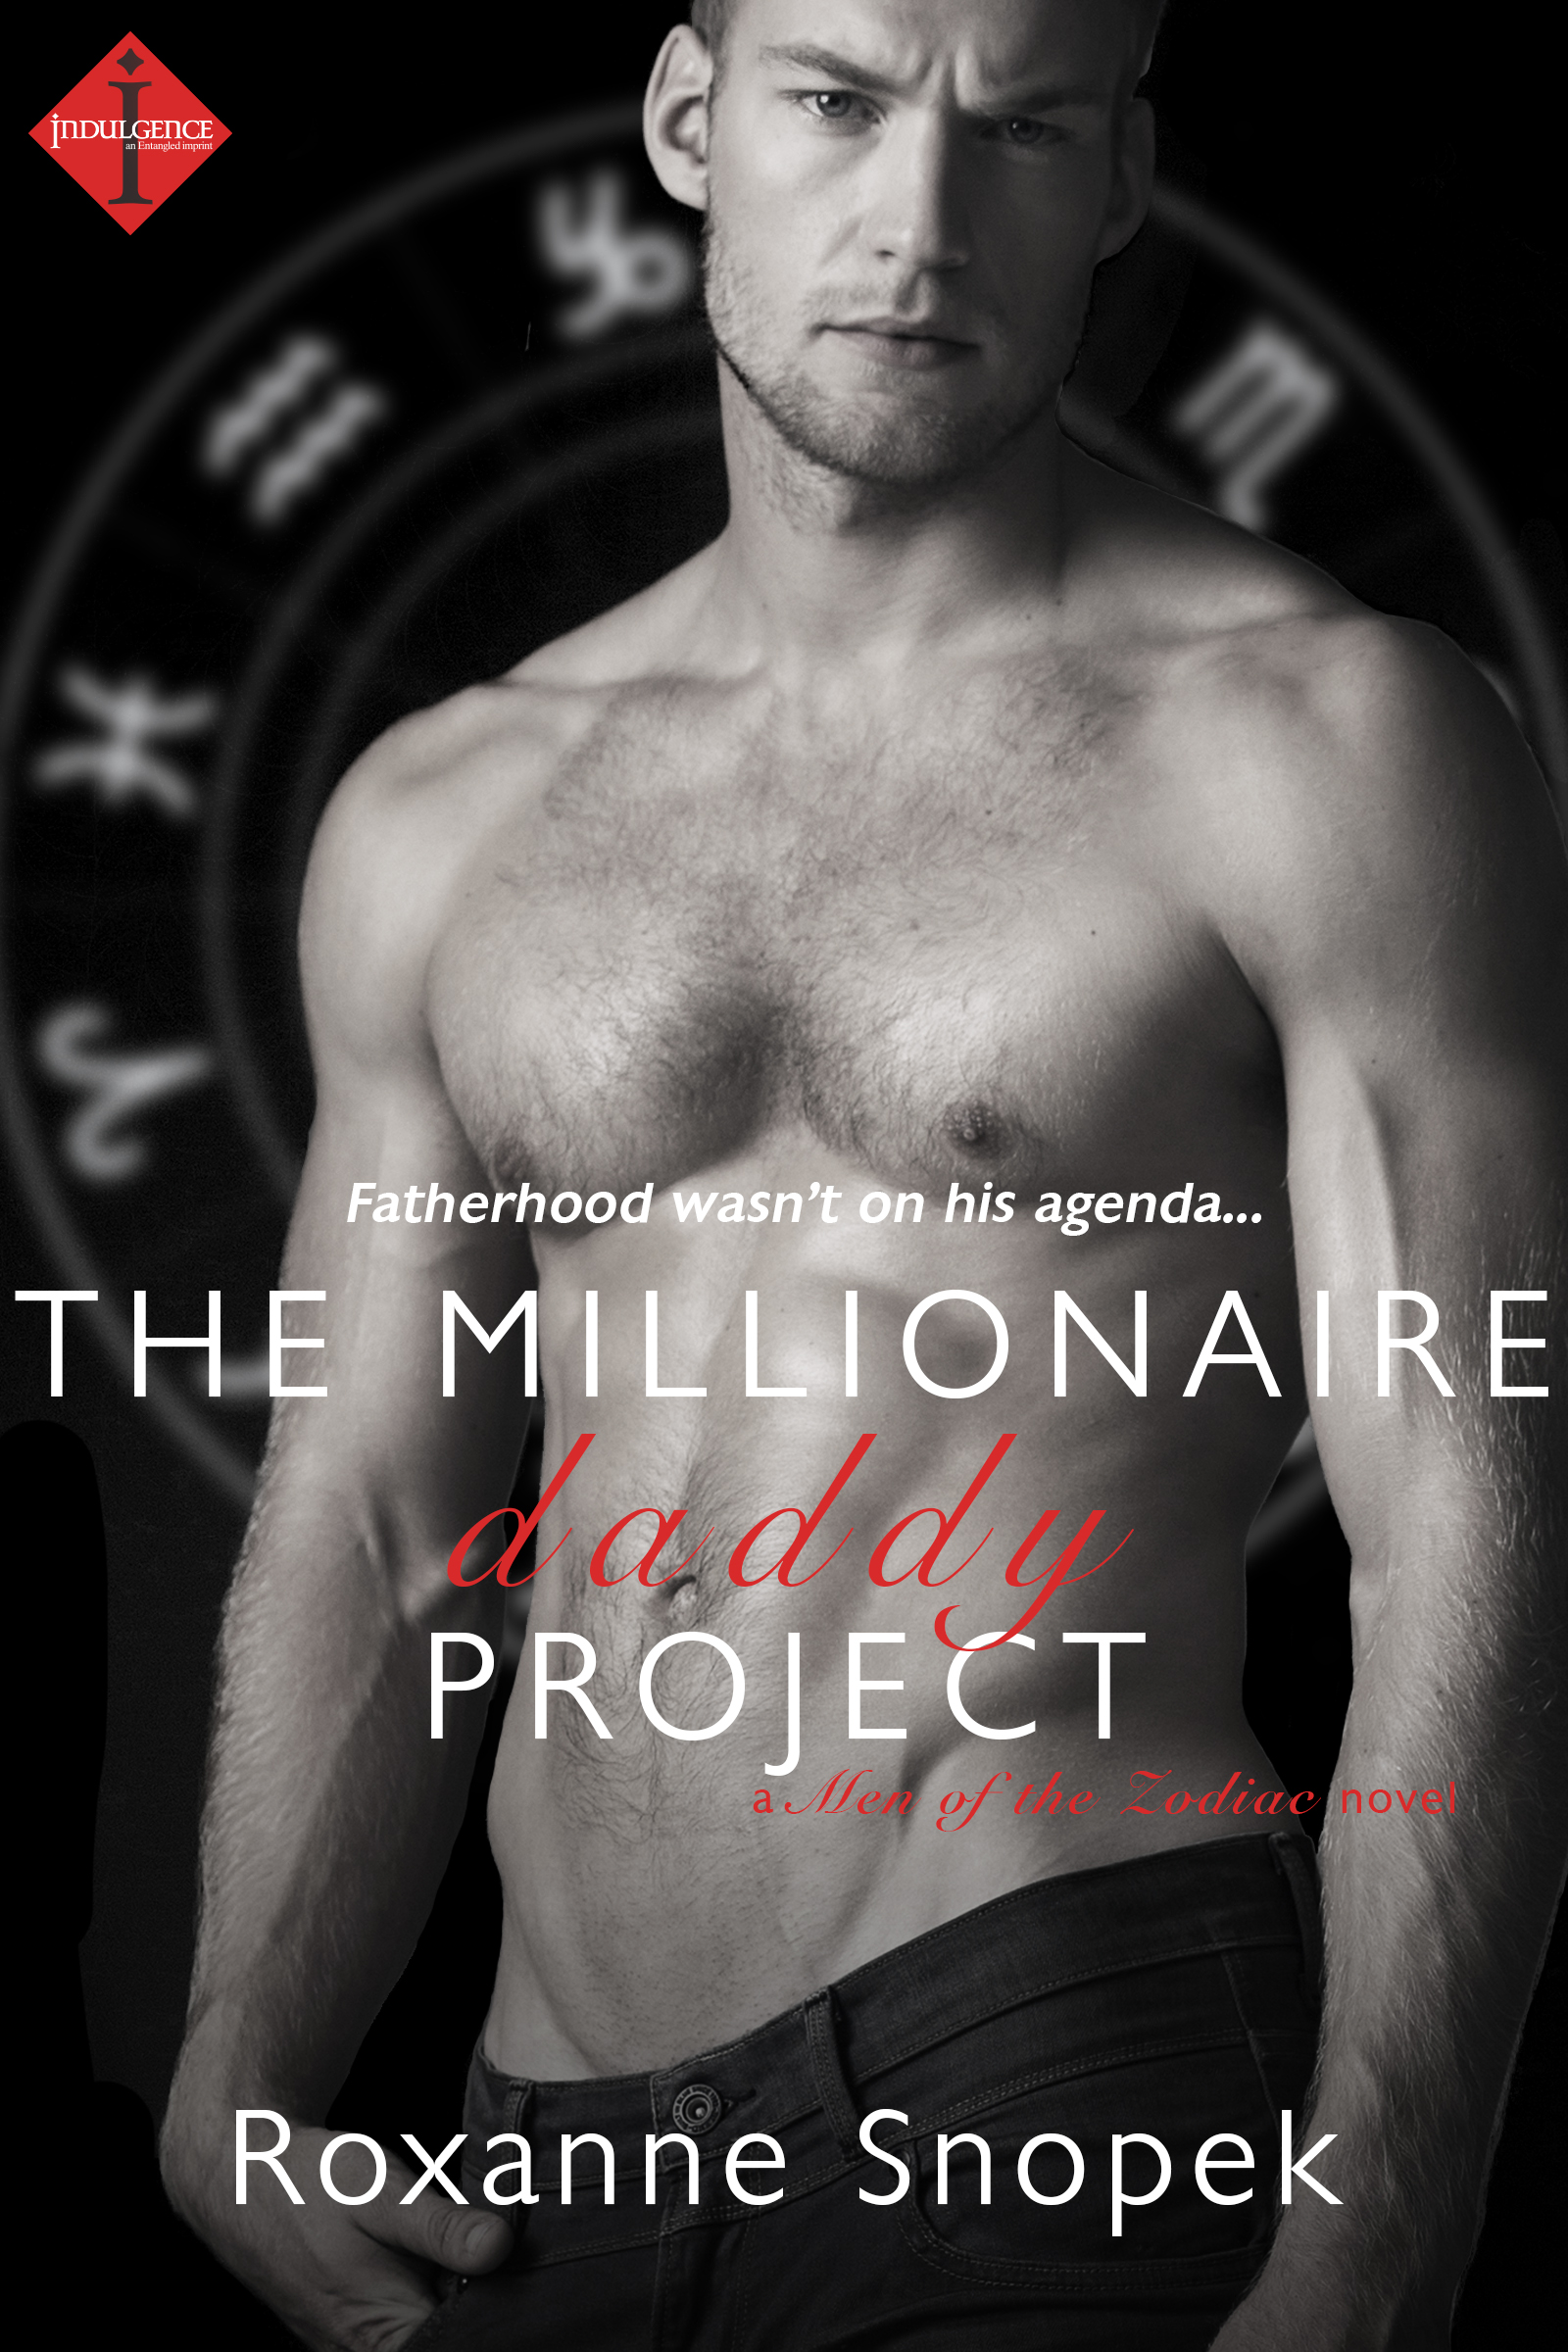 It's The Millionaire Daddy Project!!!